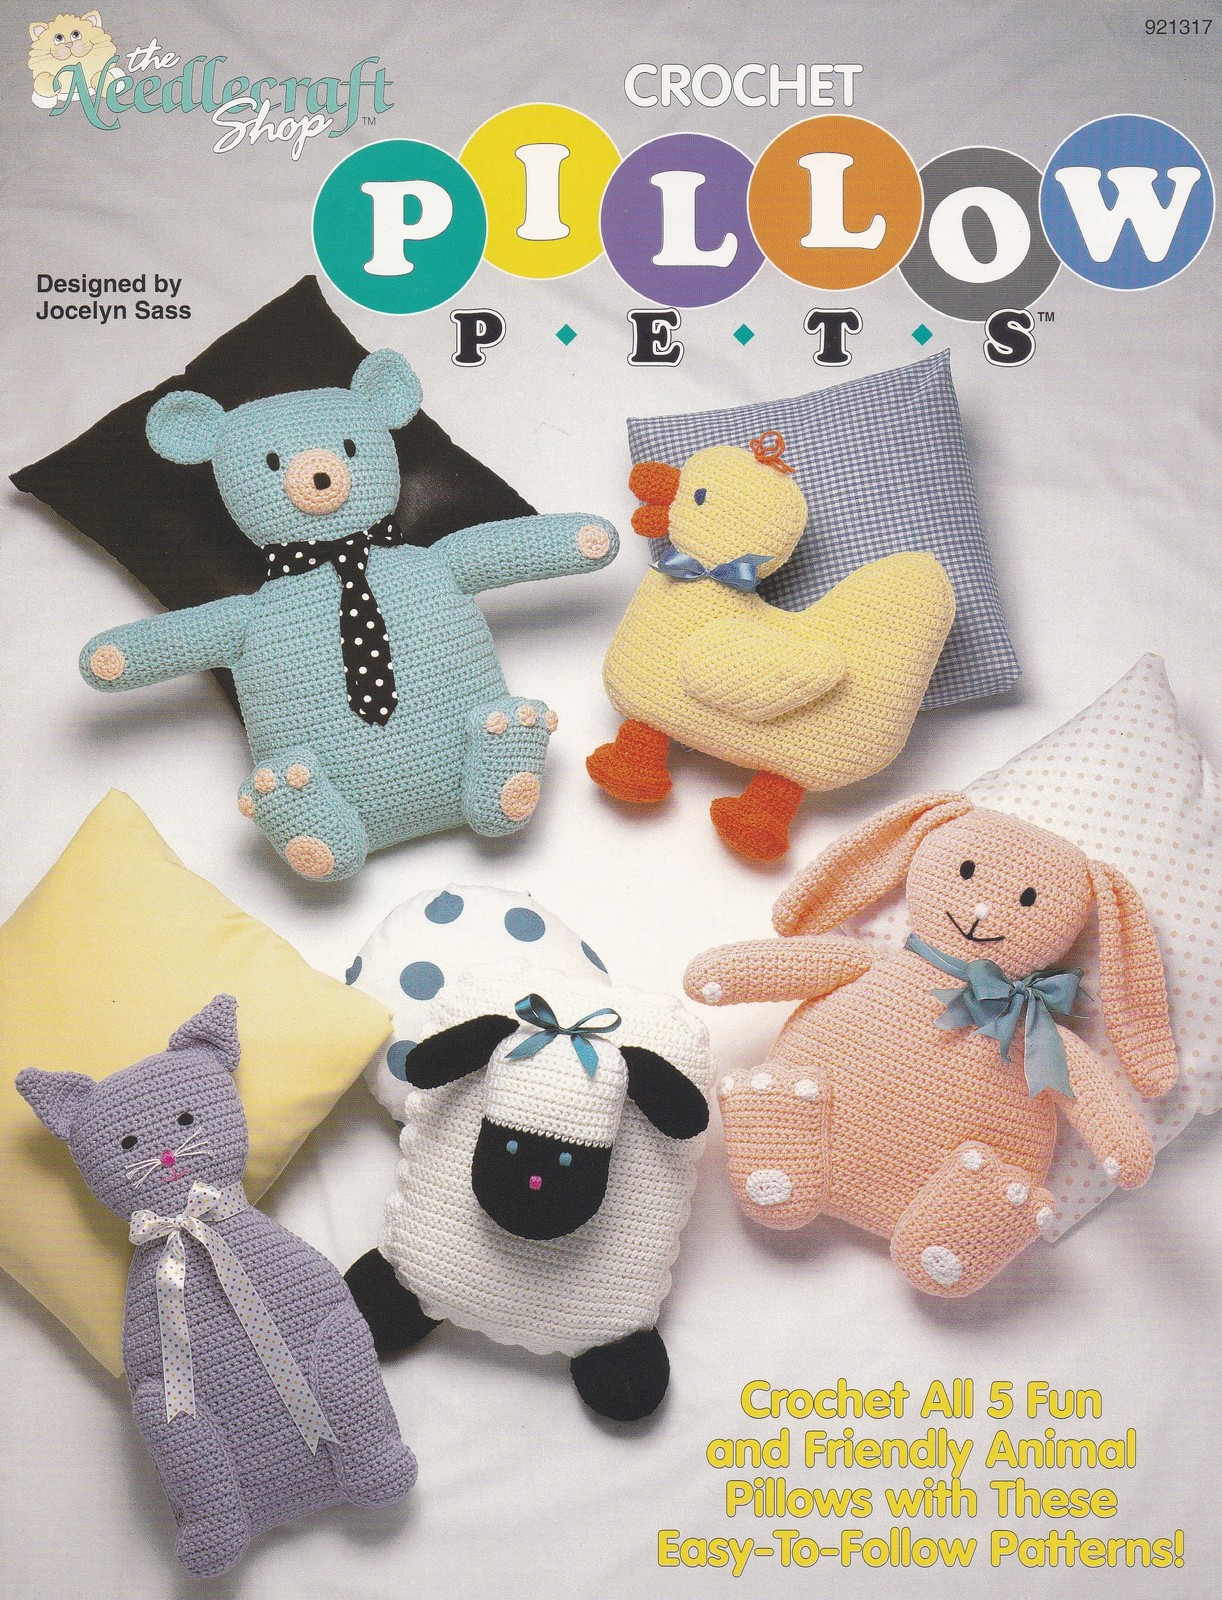 Free Crochet Patterns For Pillow Pets : Pillow Pets, Toy Animal Crochet Pattern Booklet The ...